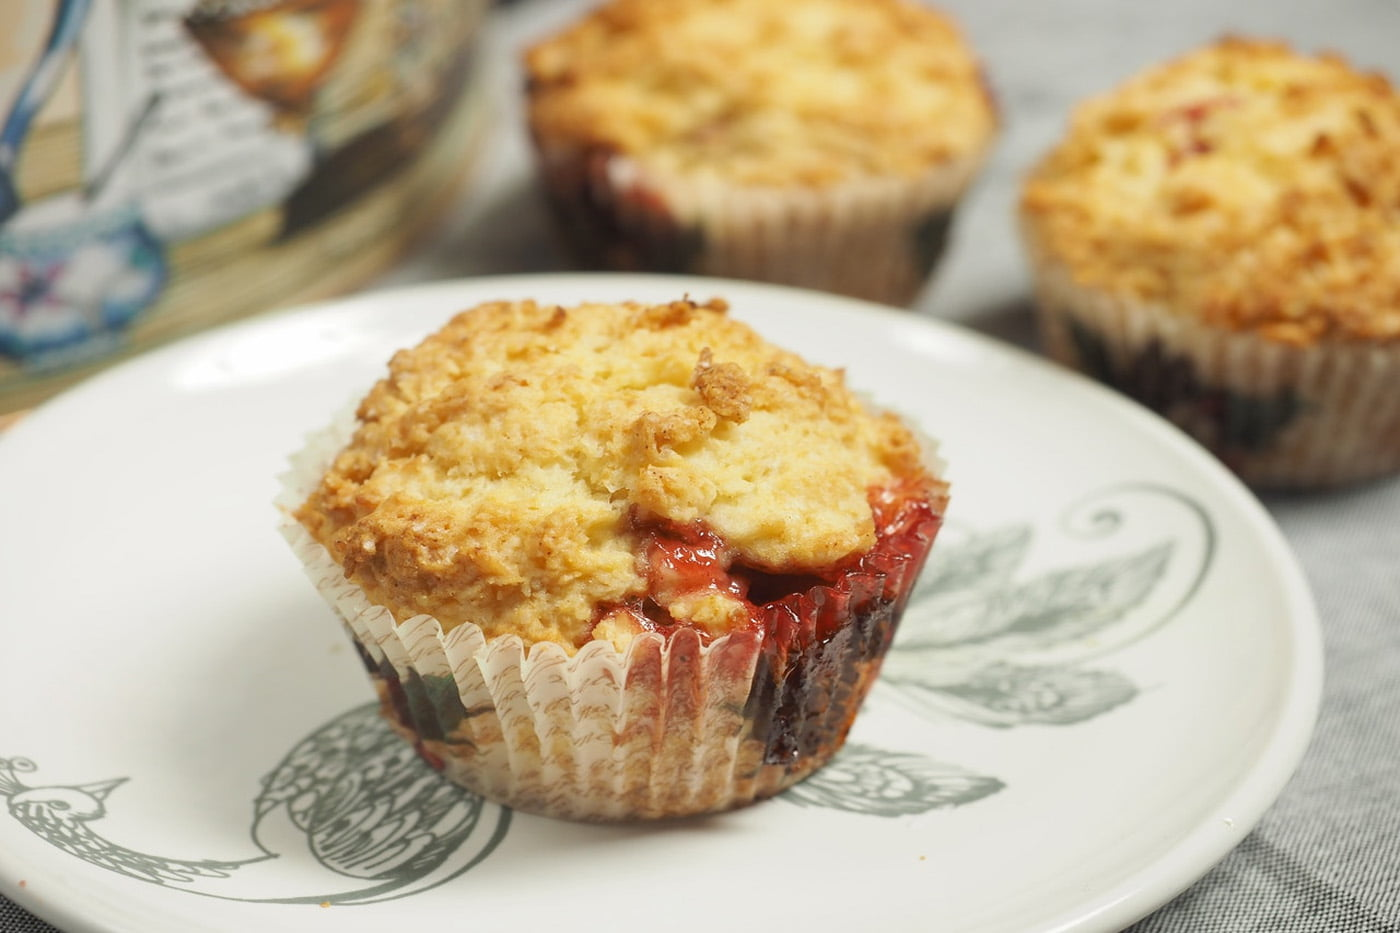 Peach Oaty Muffins with Crumbly Topping